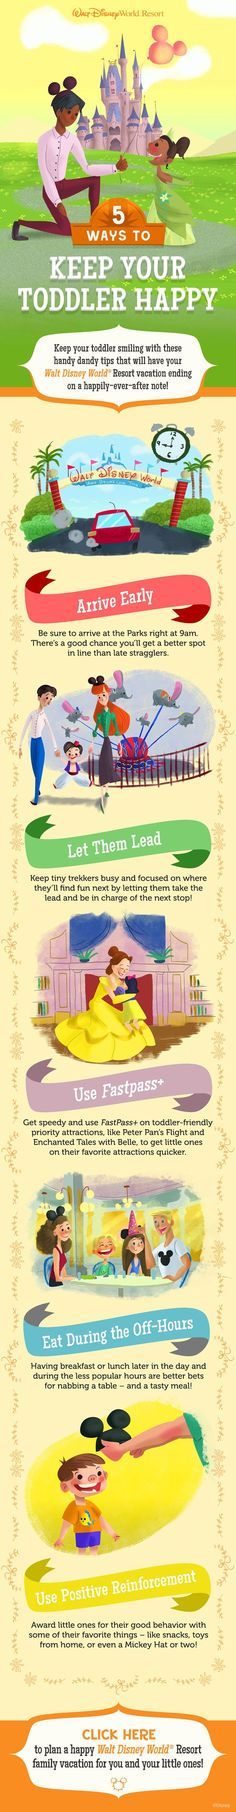 5 ways to keep your toddler happy at Walt Disney World!  | Disney Vacation | Disney Vacation Tips | Disney Planning Tips | Disney World Planning | Disney World with Kids |